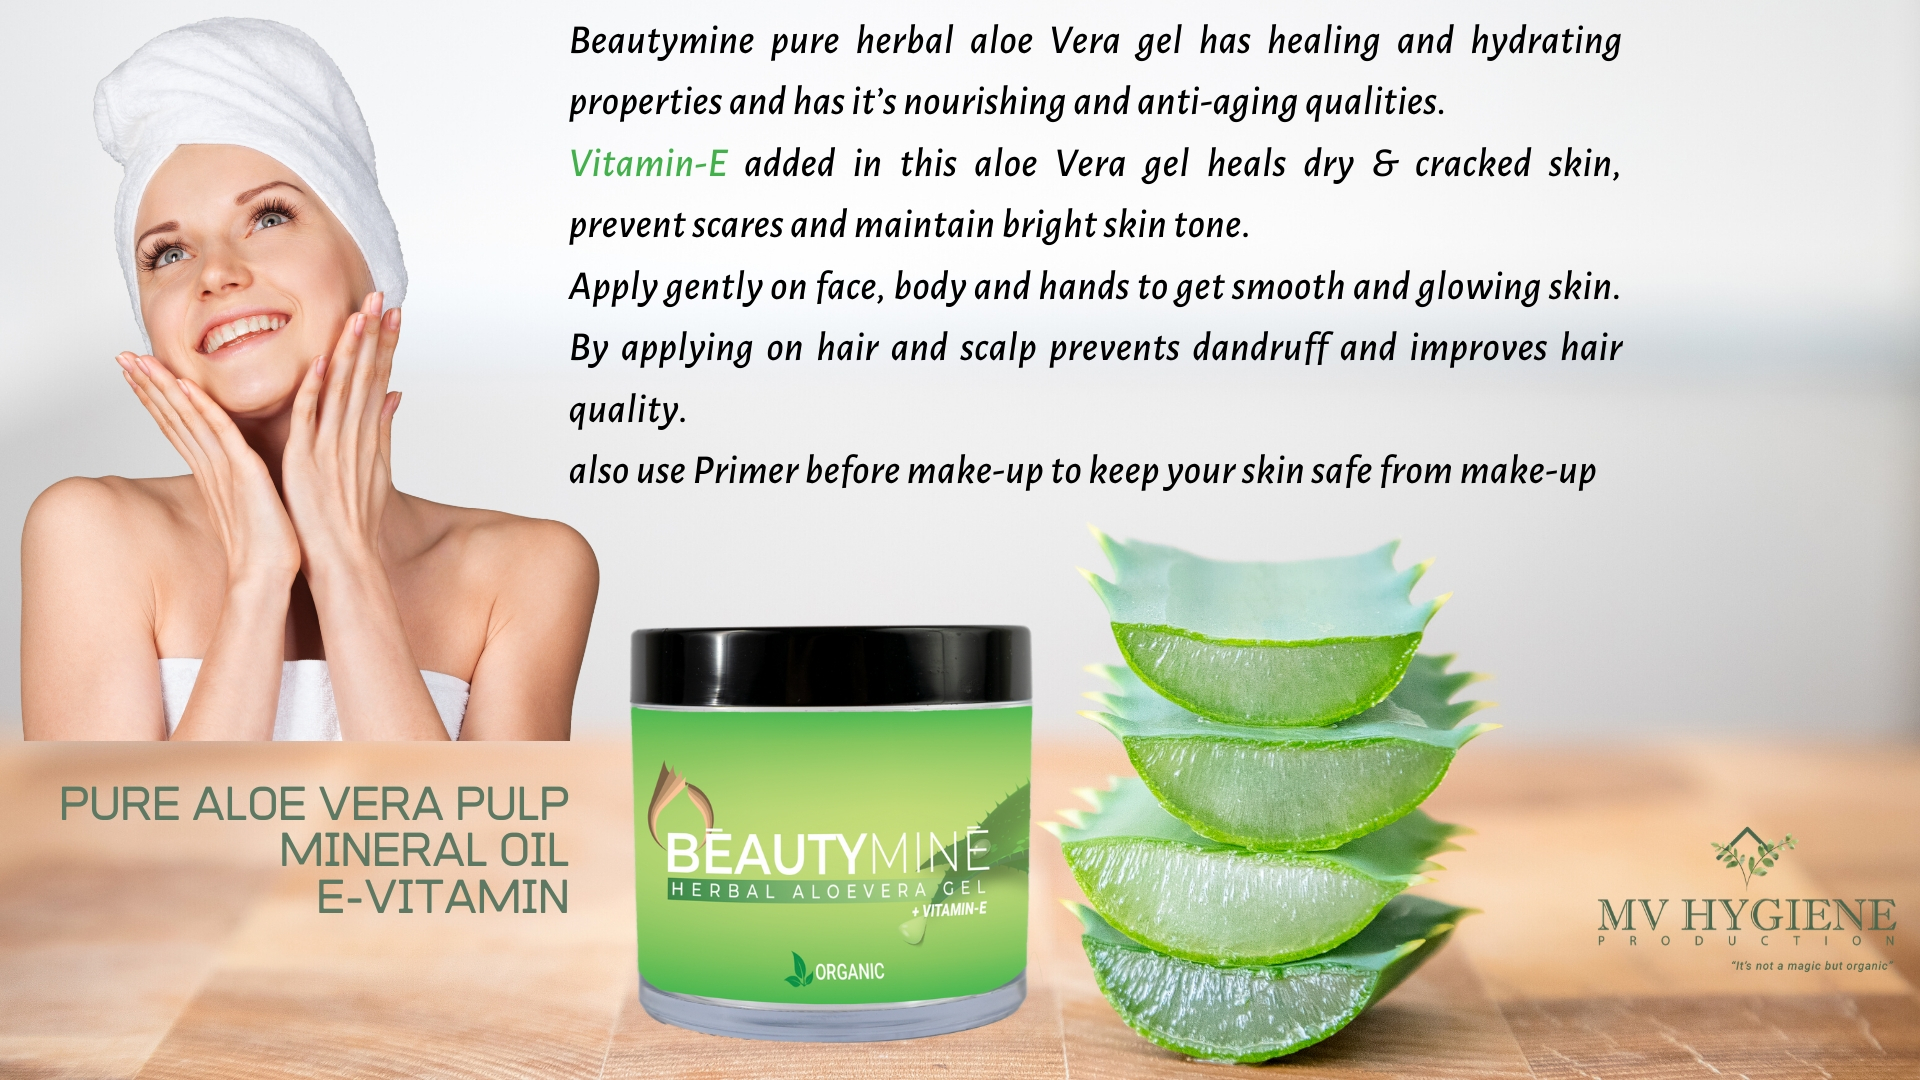 Beautymine Herbal Aloevera Gel